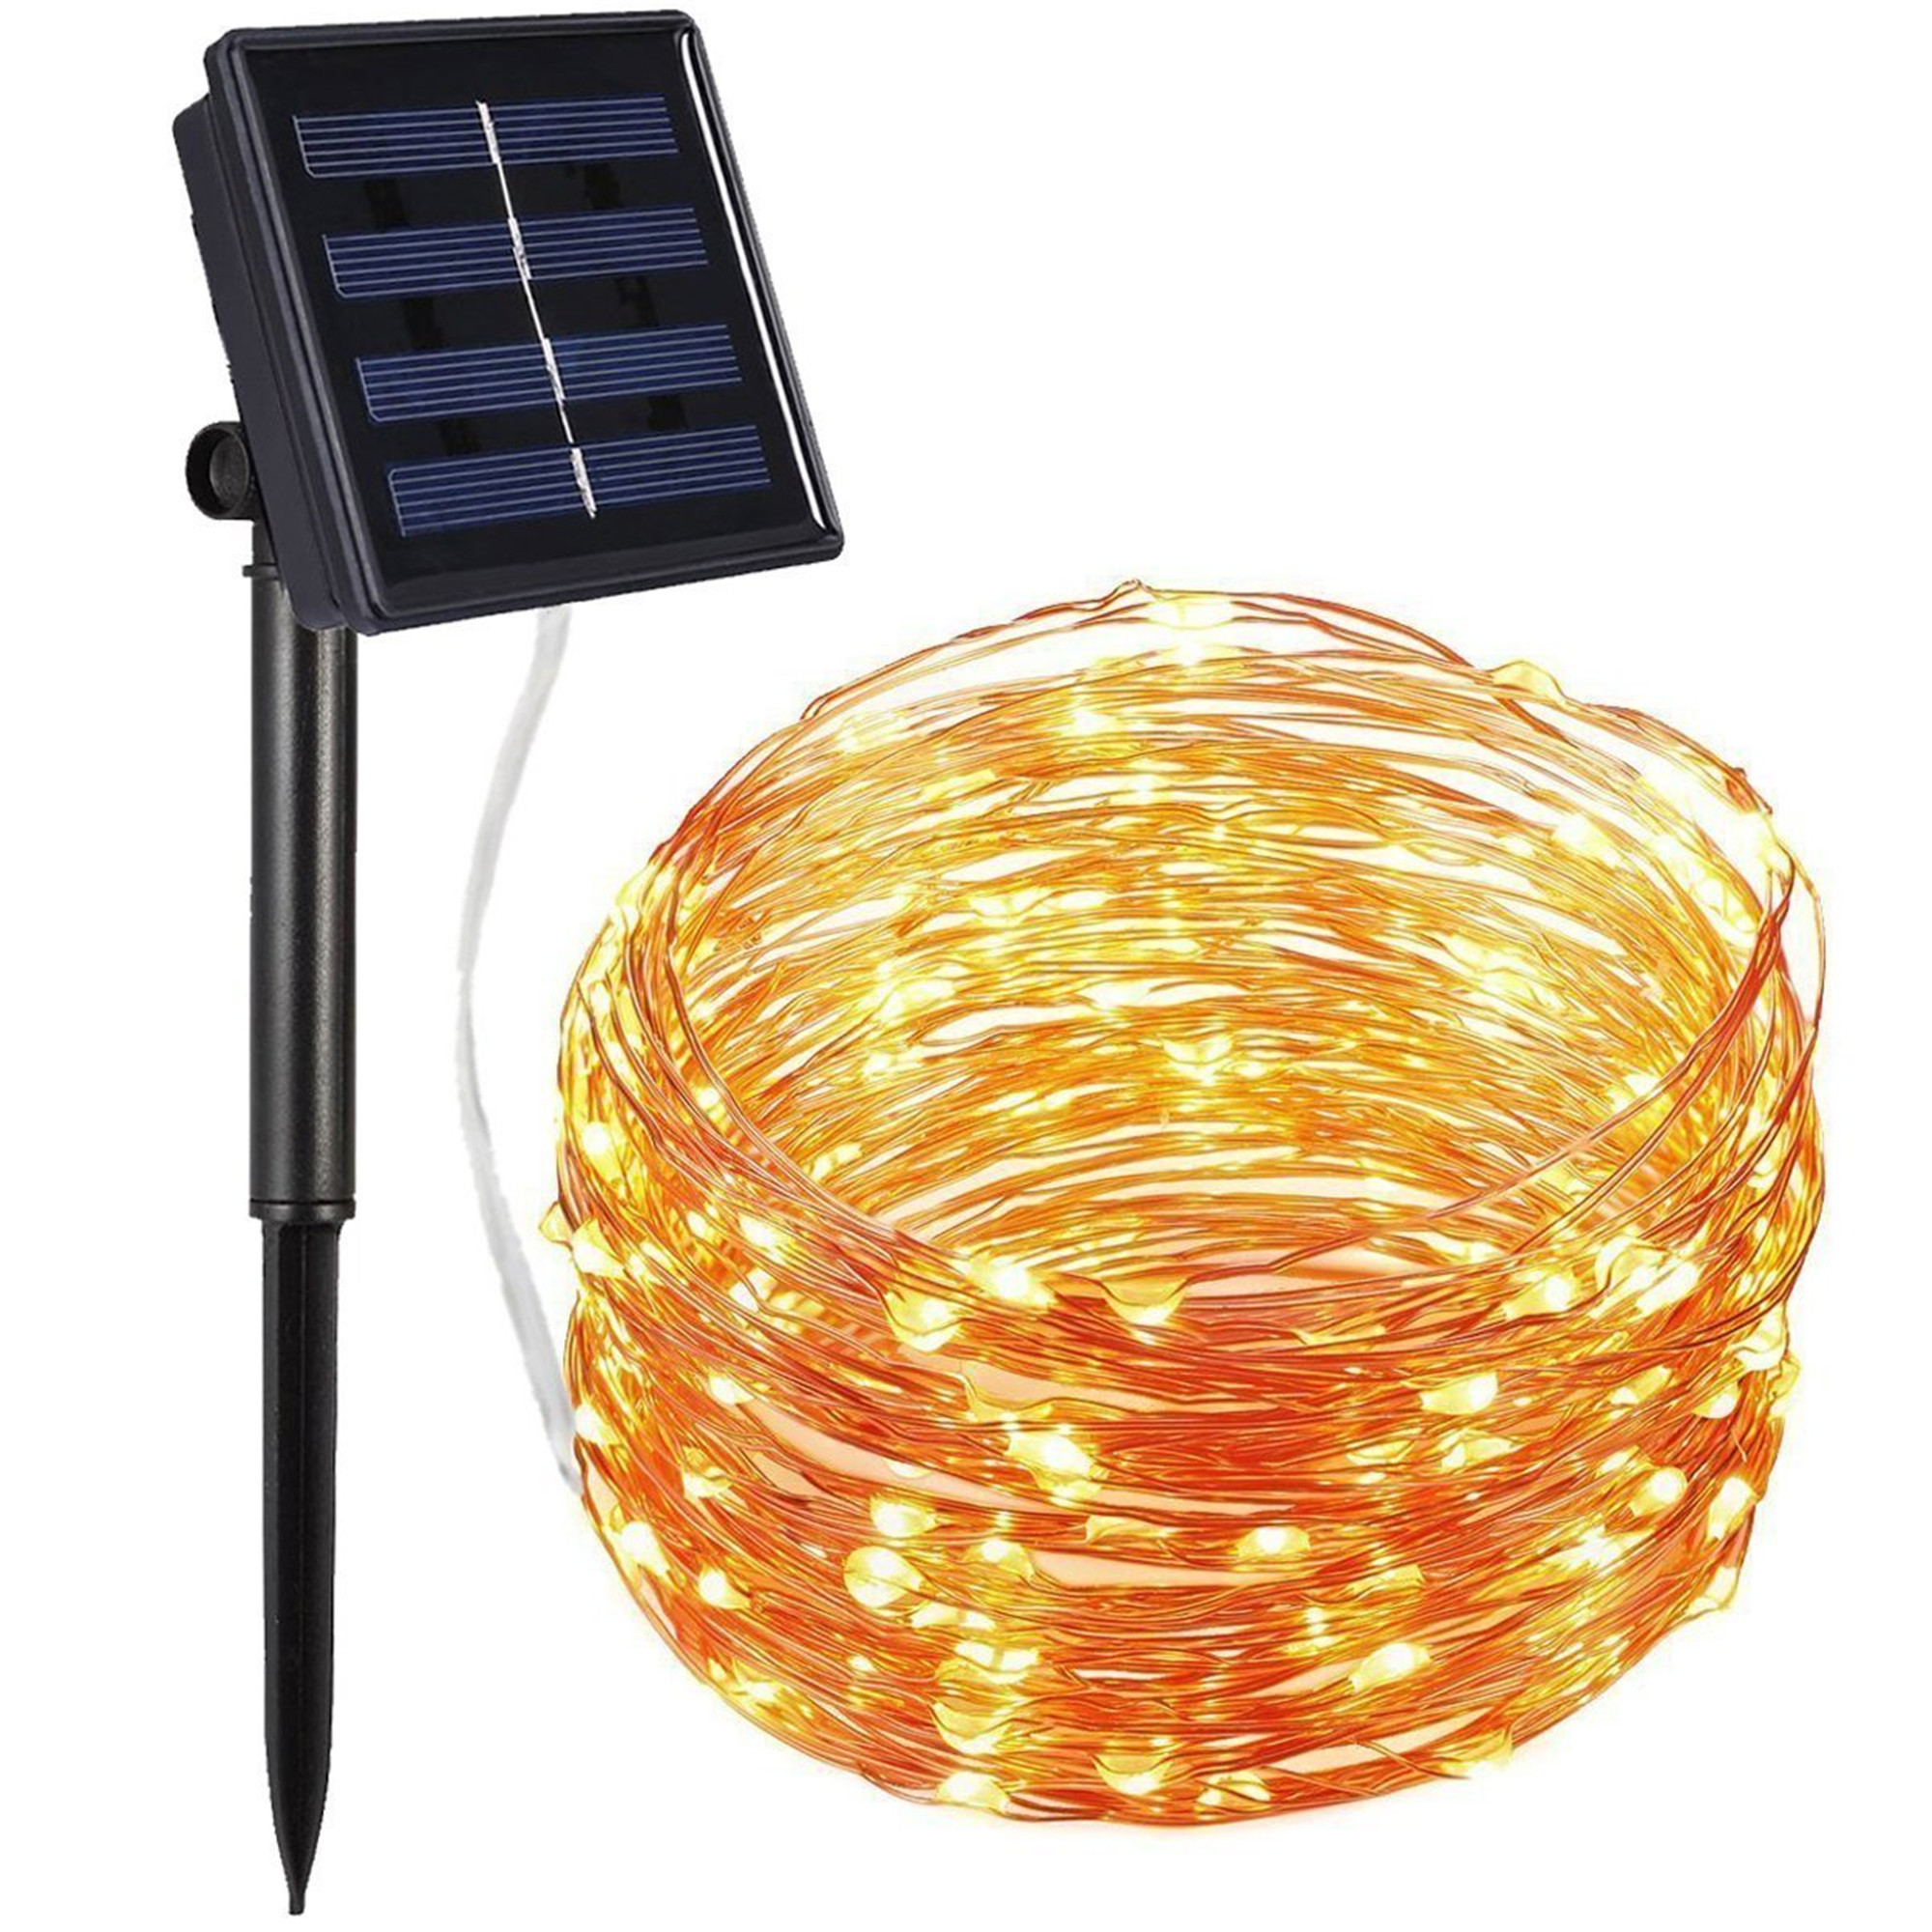 Solar String Lights, Copper Wire Lights, 72ft 200 LED 8 Modes Starry String Lights for Christmas, Garden, Patio, Wedding, Party, Dancing